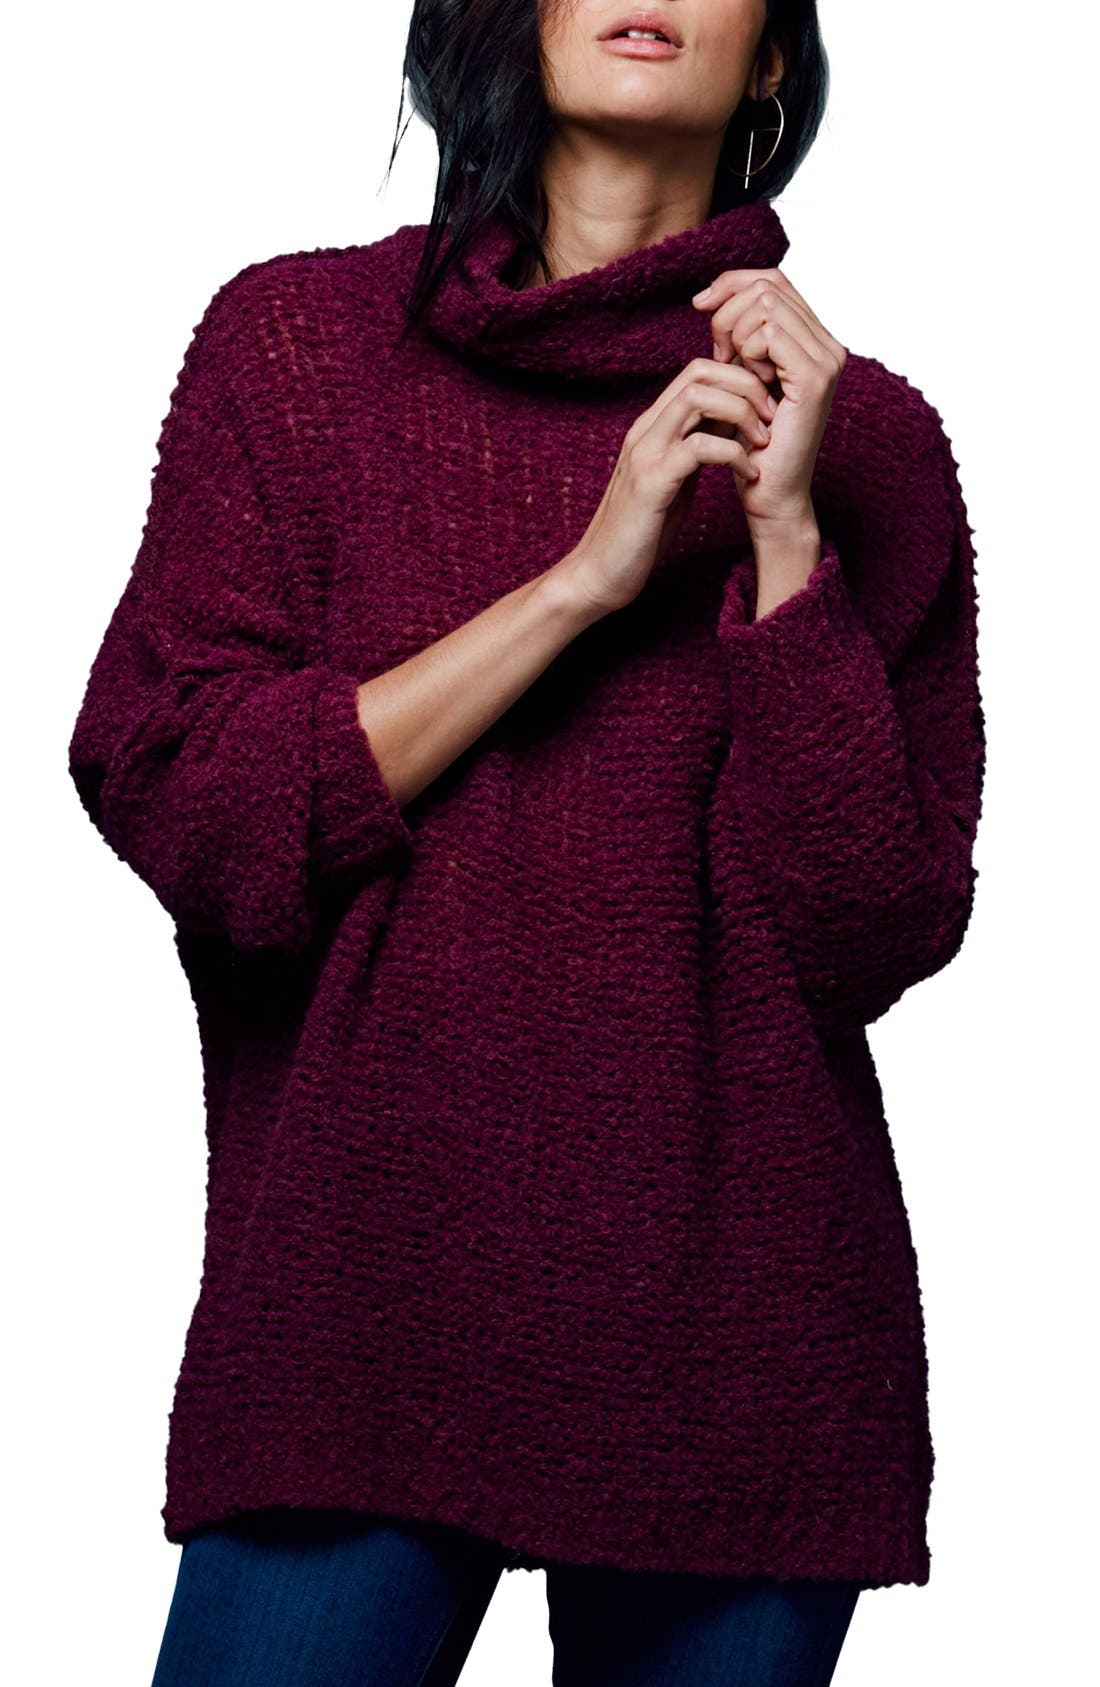 'She's All That' Knit Turtleneck Sweater,                             Main thumbnail 4, color,